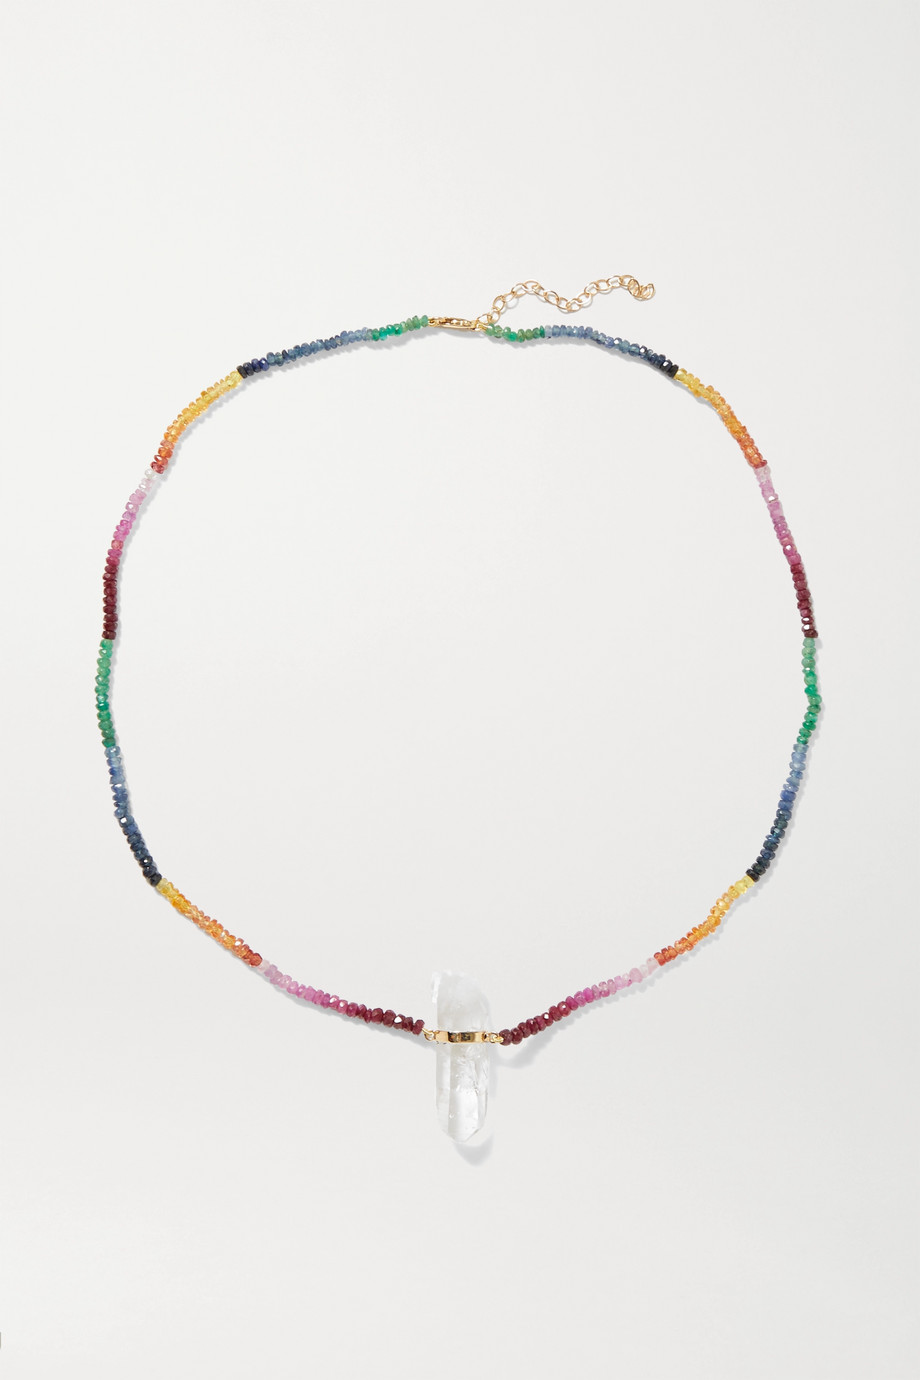 JIA JIA 14-karat gold, sapphire and quartz necklace